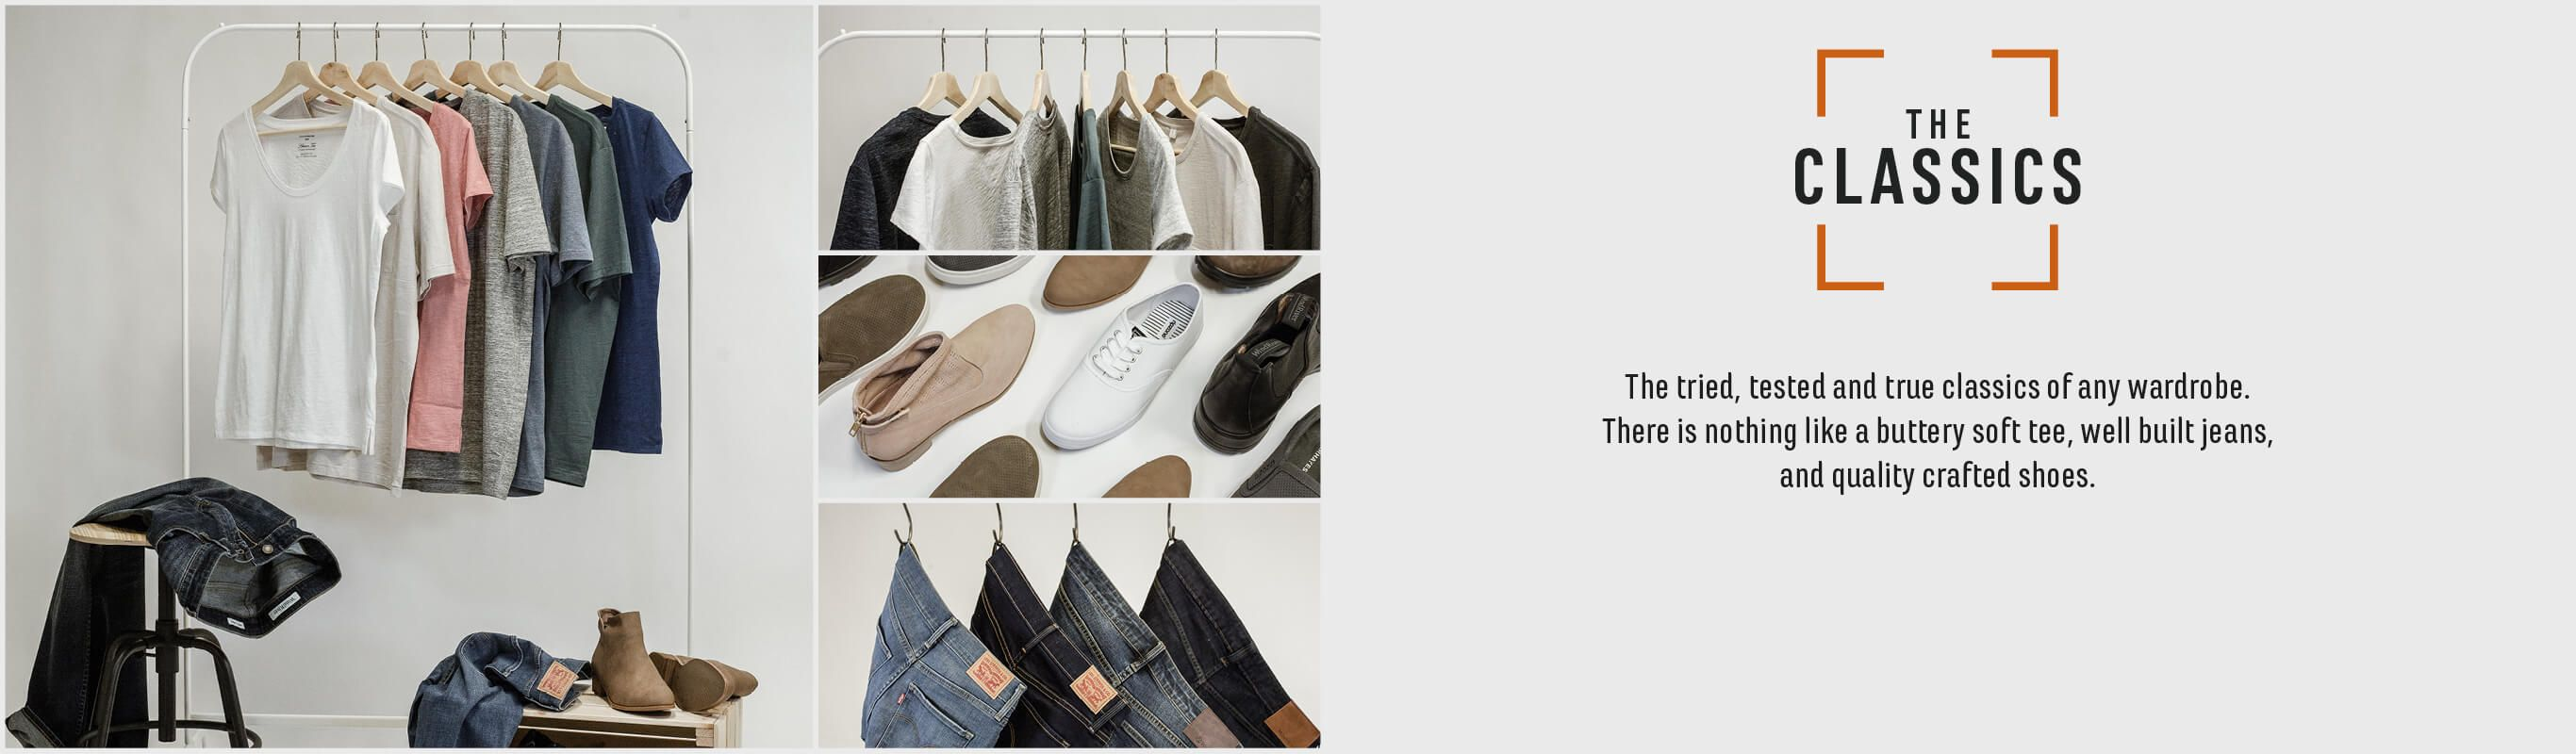 The Classics. The tried tested and true classics of any wardrobe.